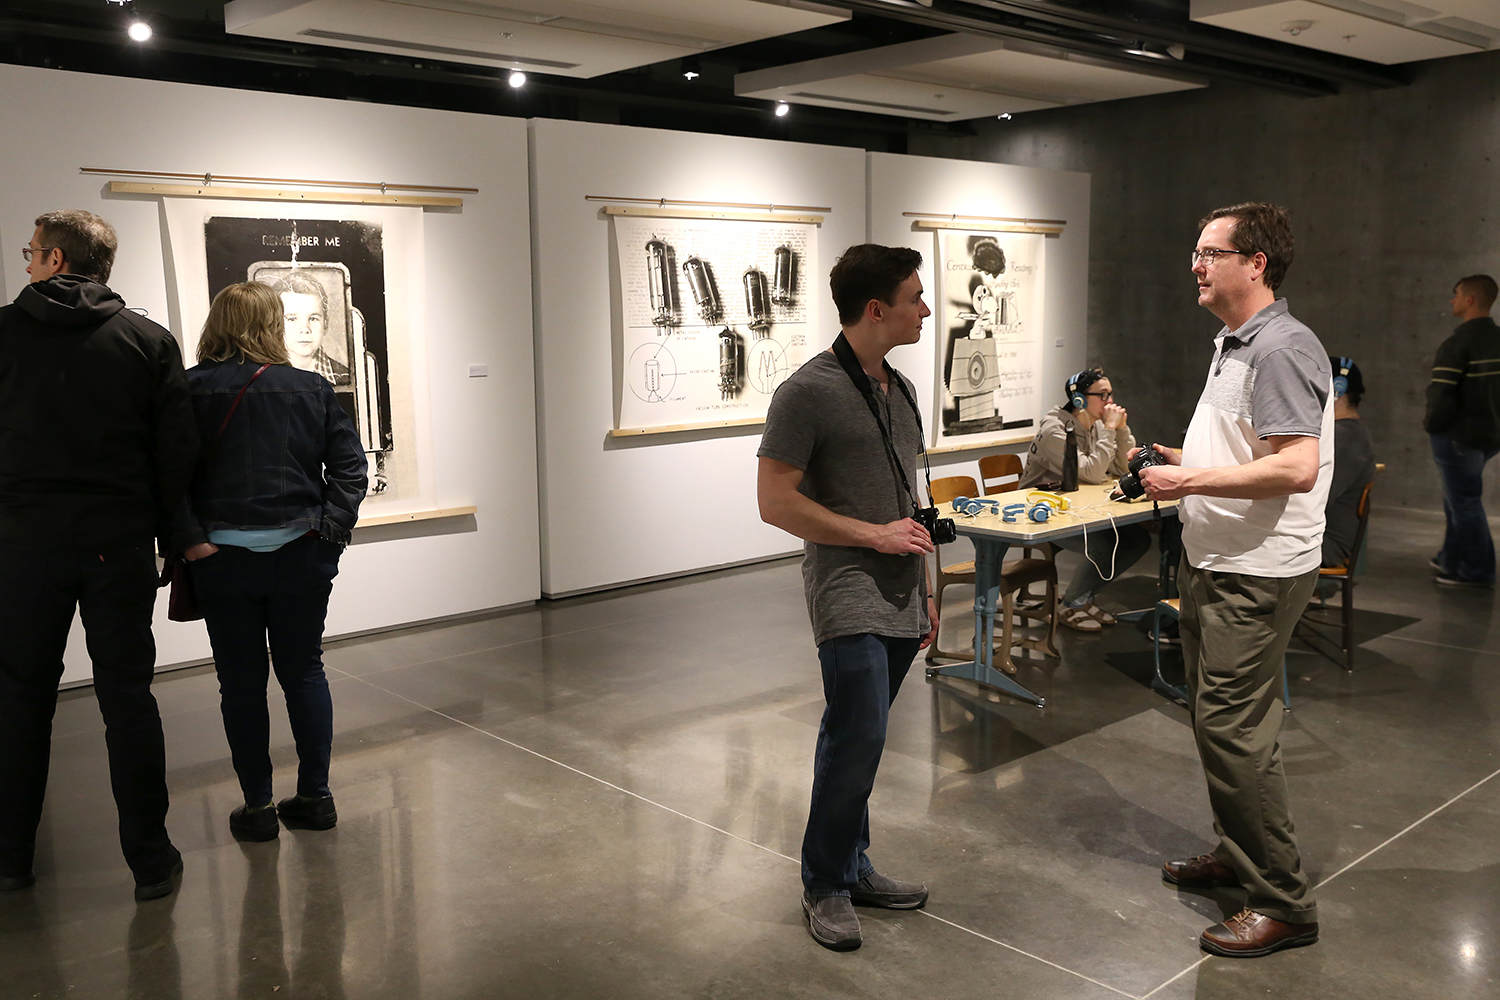 The artist talking with a viewer during the opening reception.